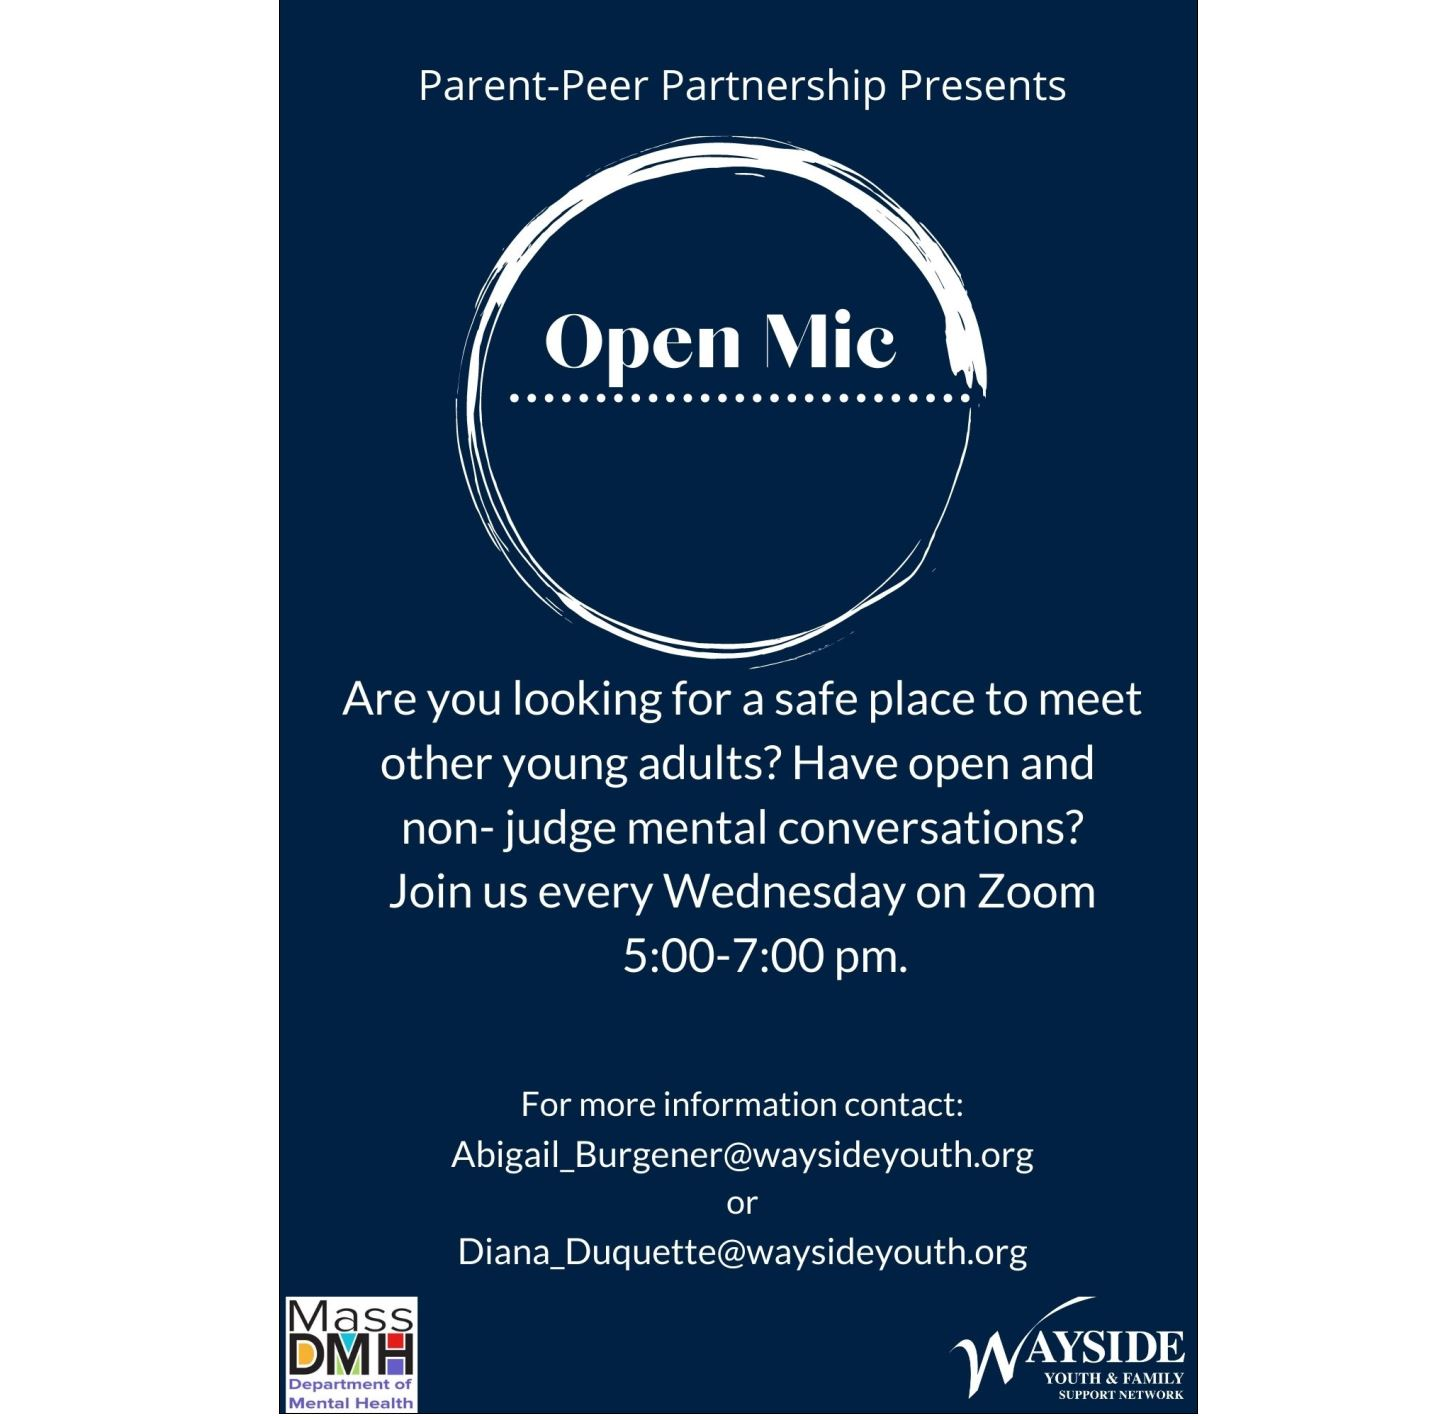 Open Mic: Virtual Young Adult Event - Hosted by Wayside Youth & Family Support Network